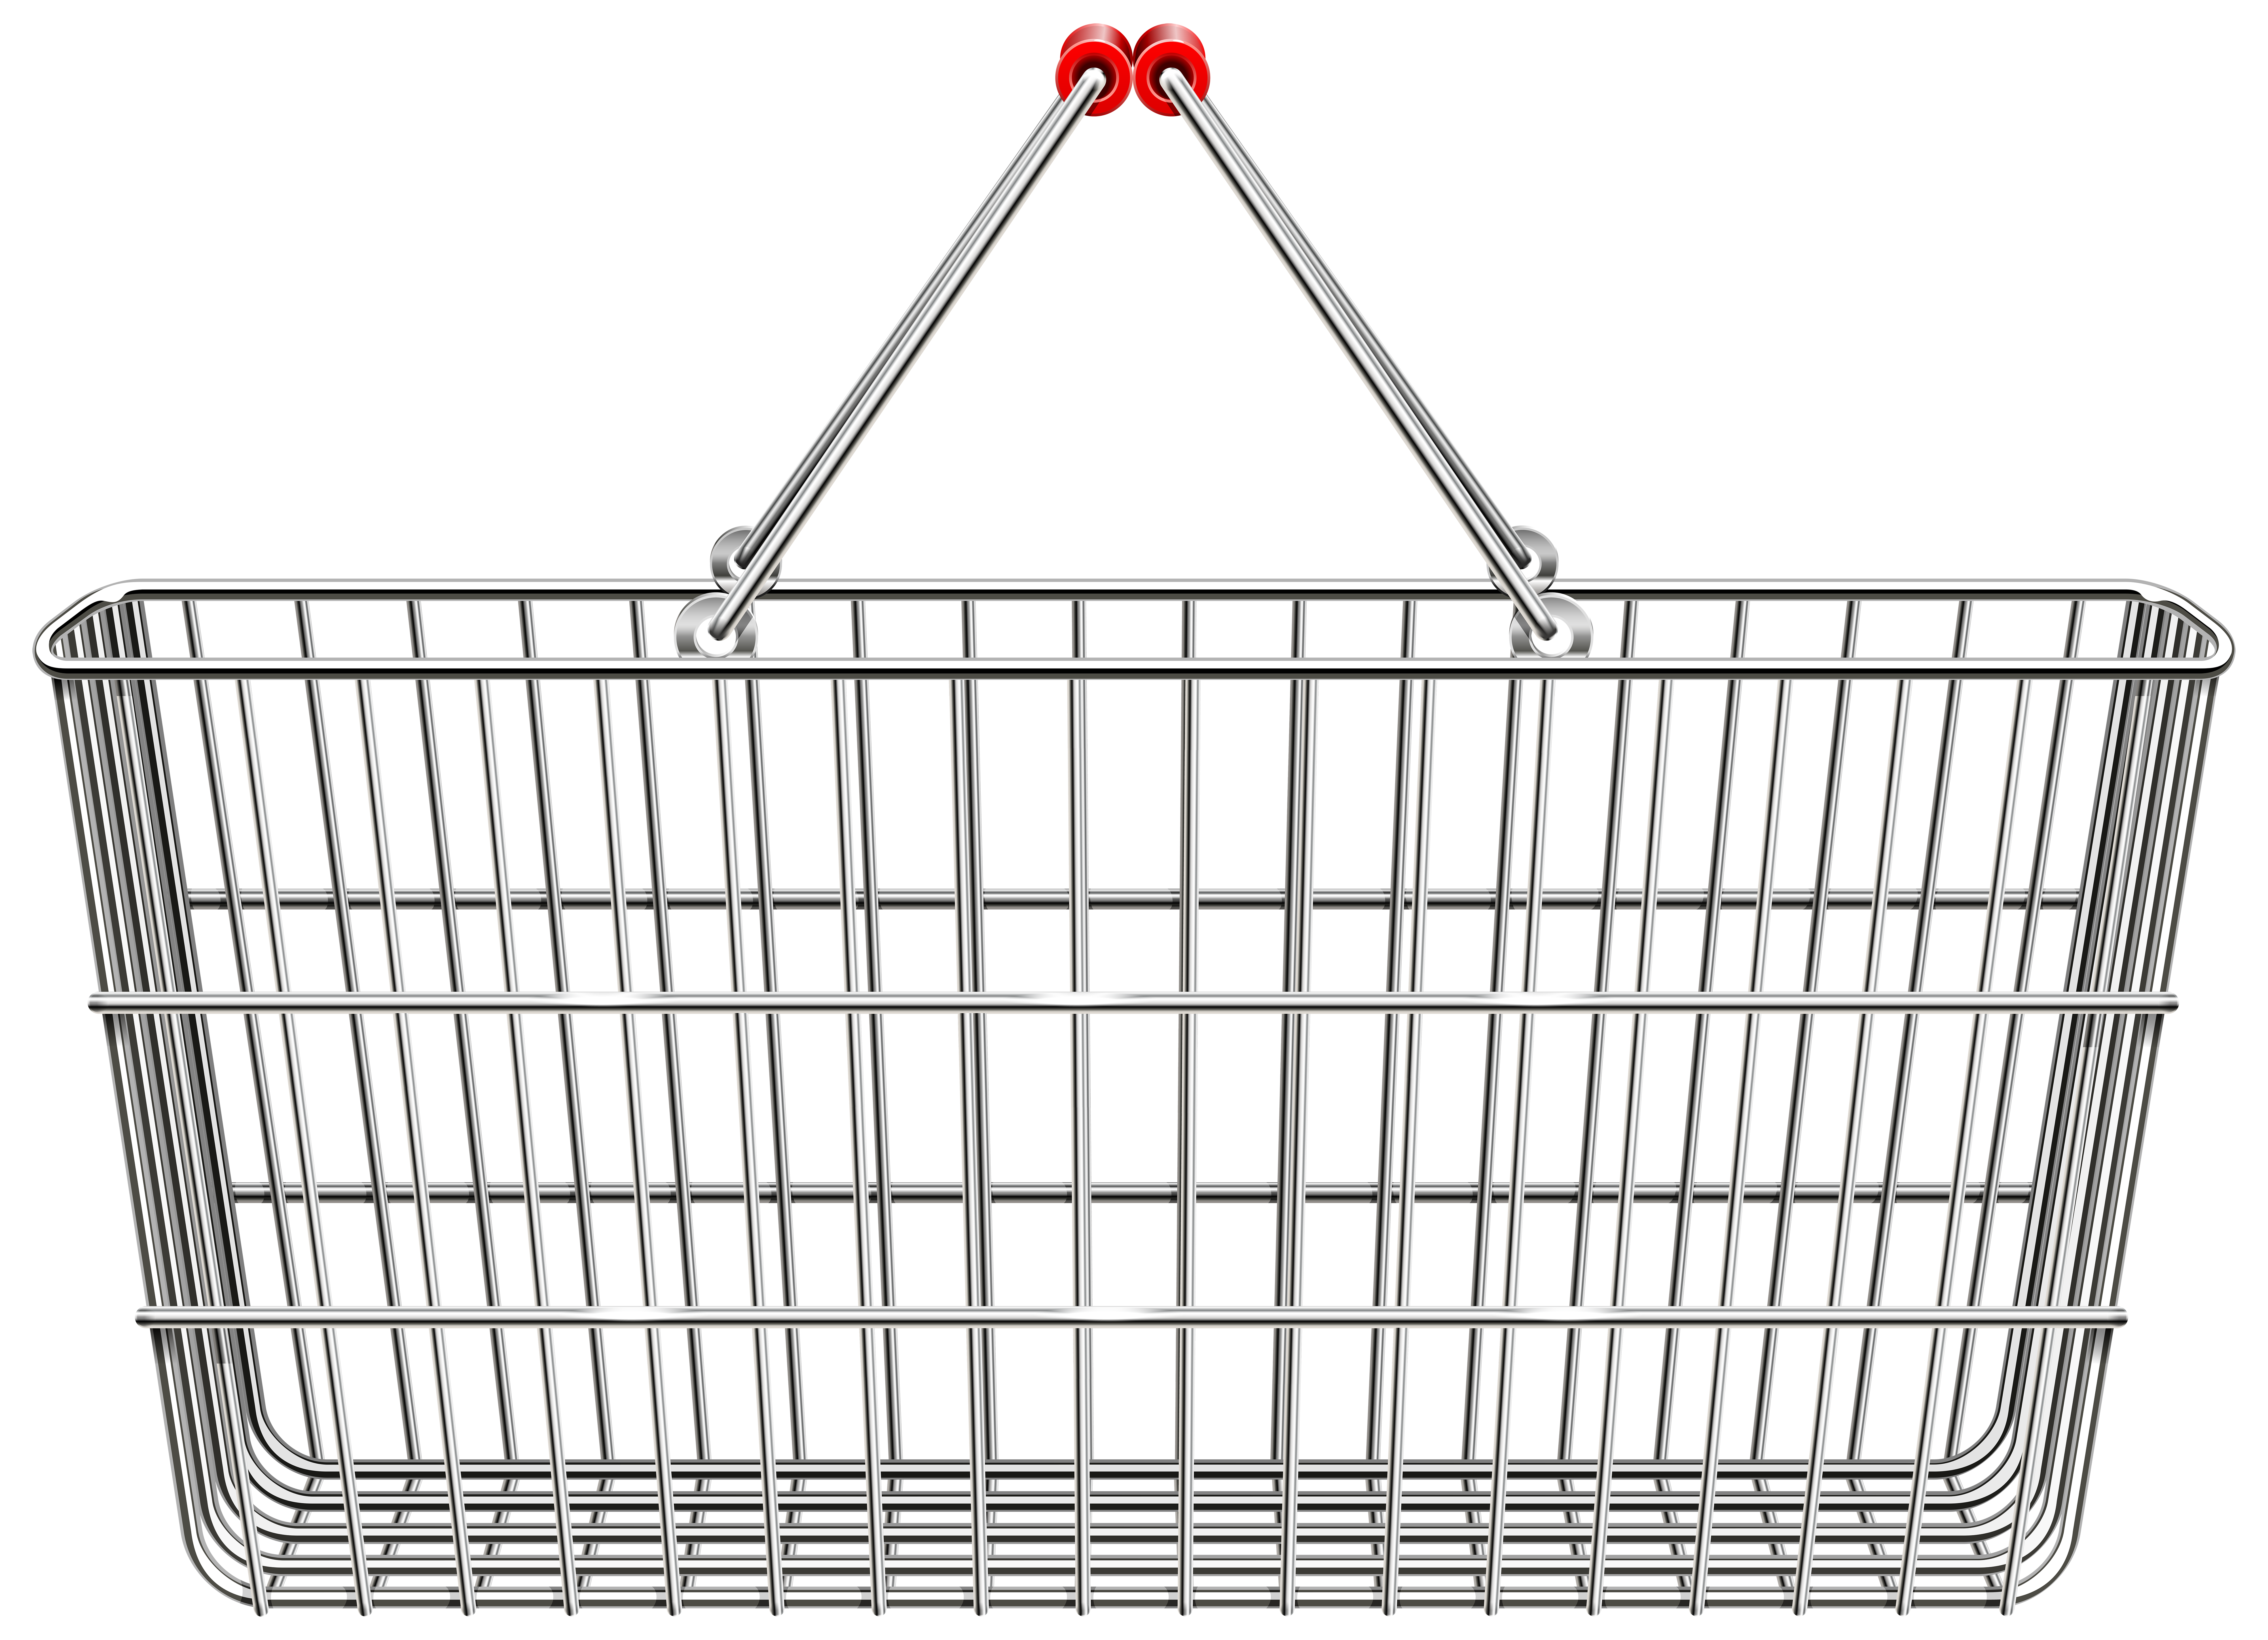 svg royalty free stock Shopping cart font awesome. Supermarket clipart grocery basket.